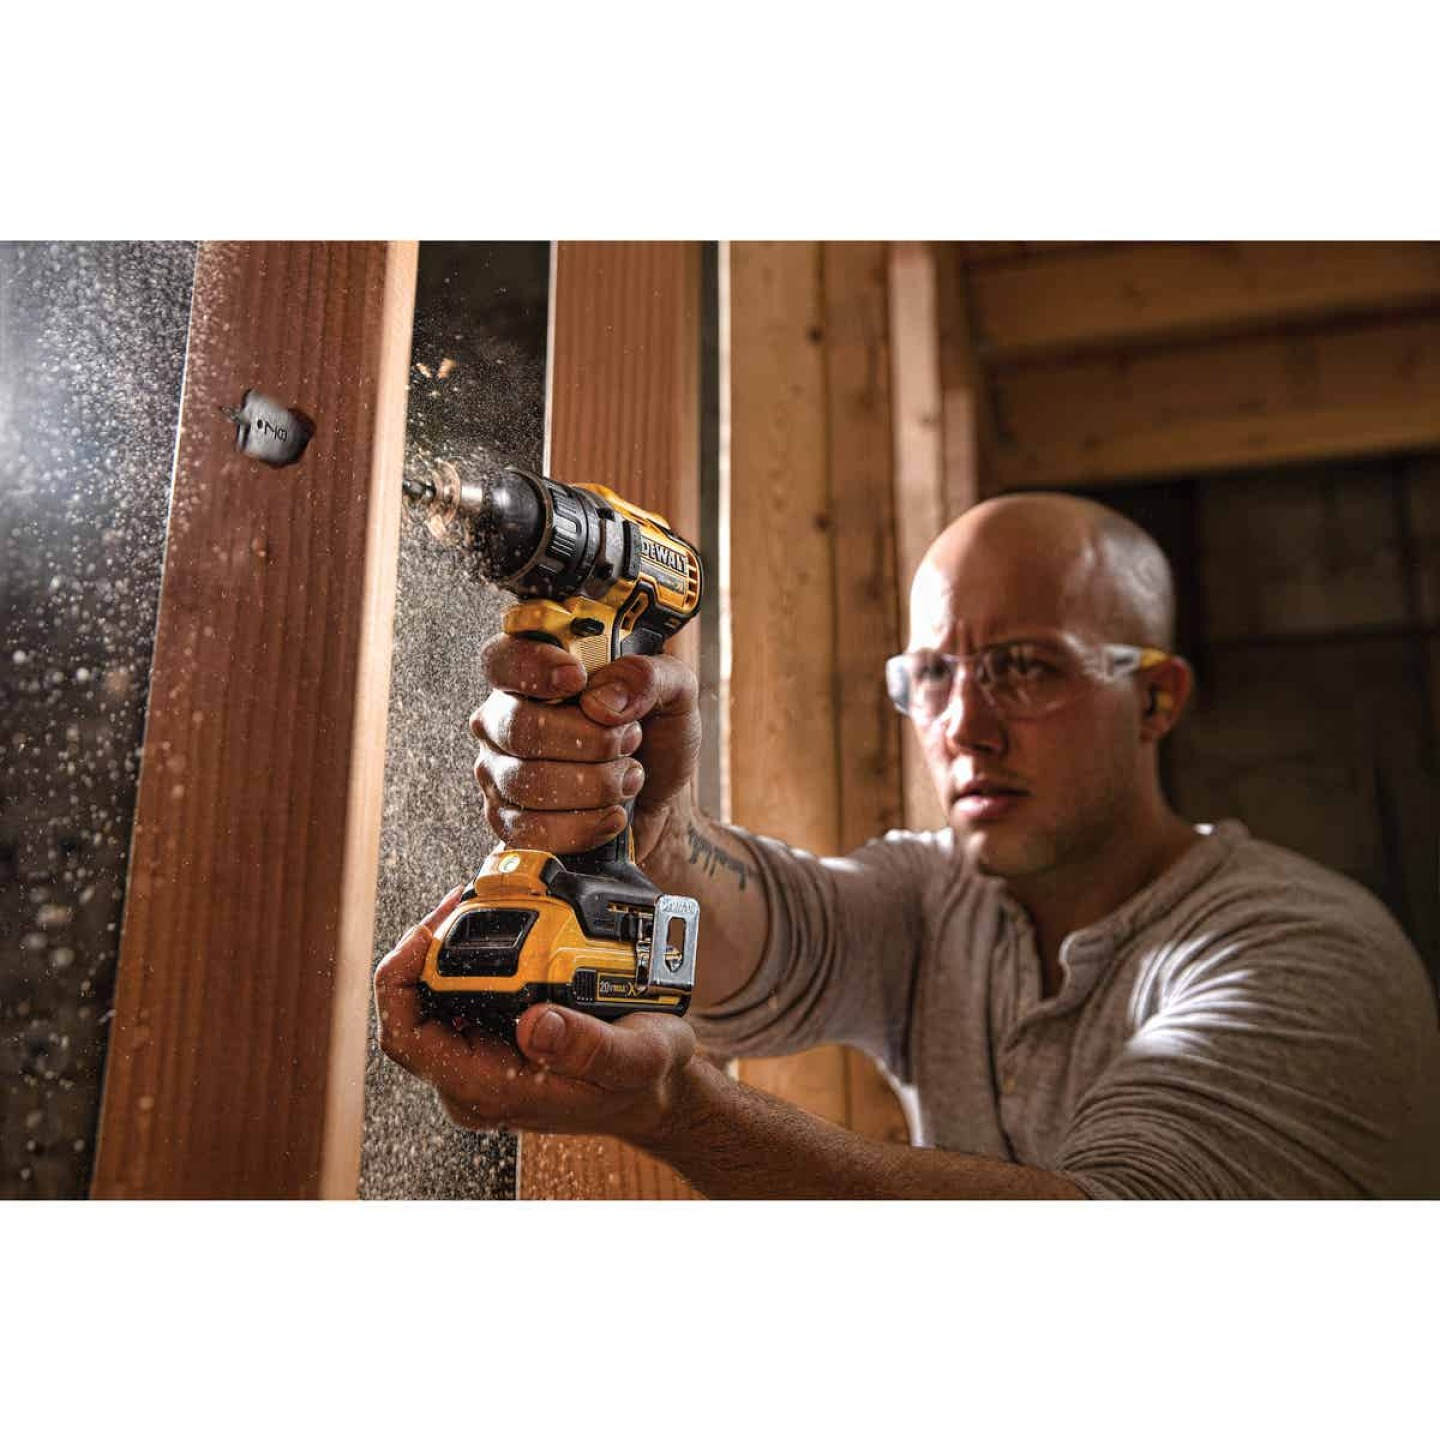 DeWalt 20 Volt MAX XR Lithium-Ion Brushless 1/2 In. Cordless Drill Kit Image 2